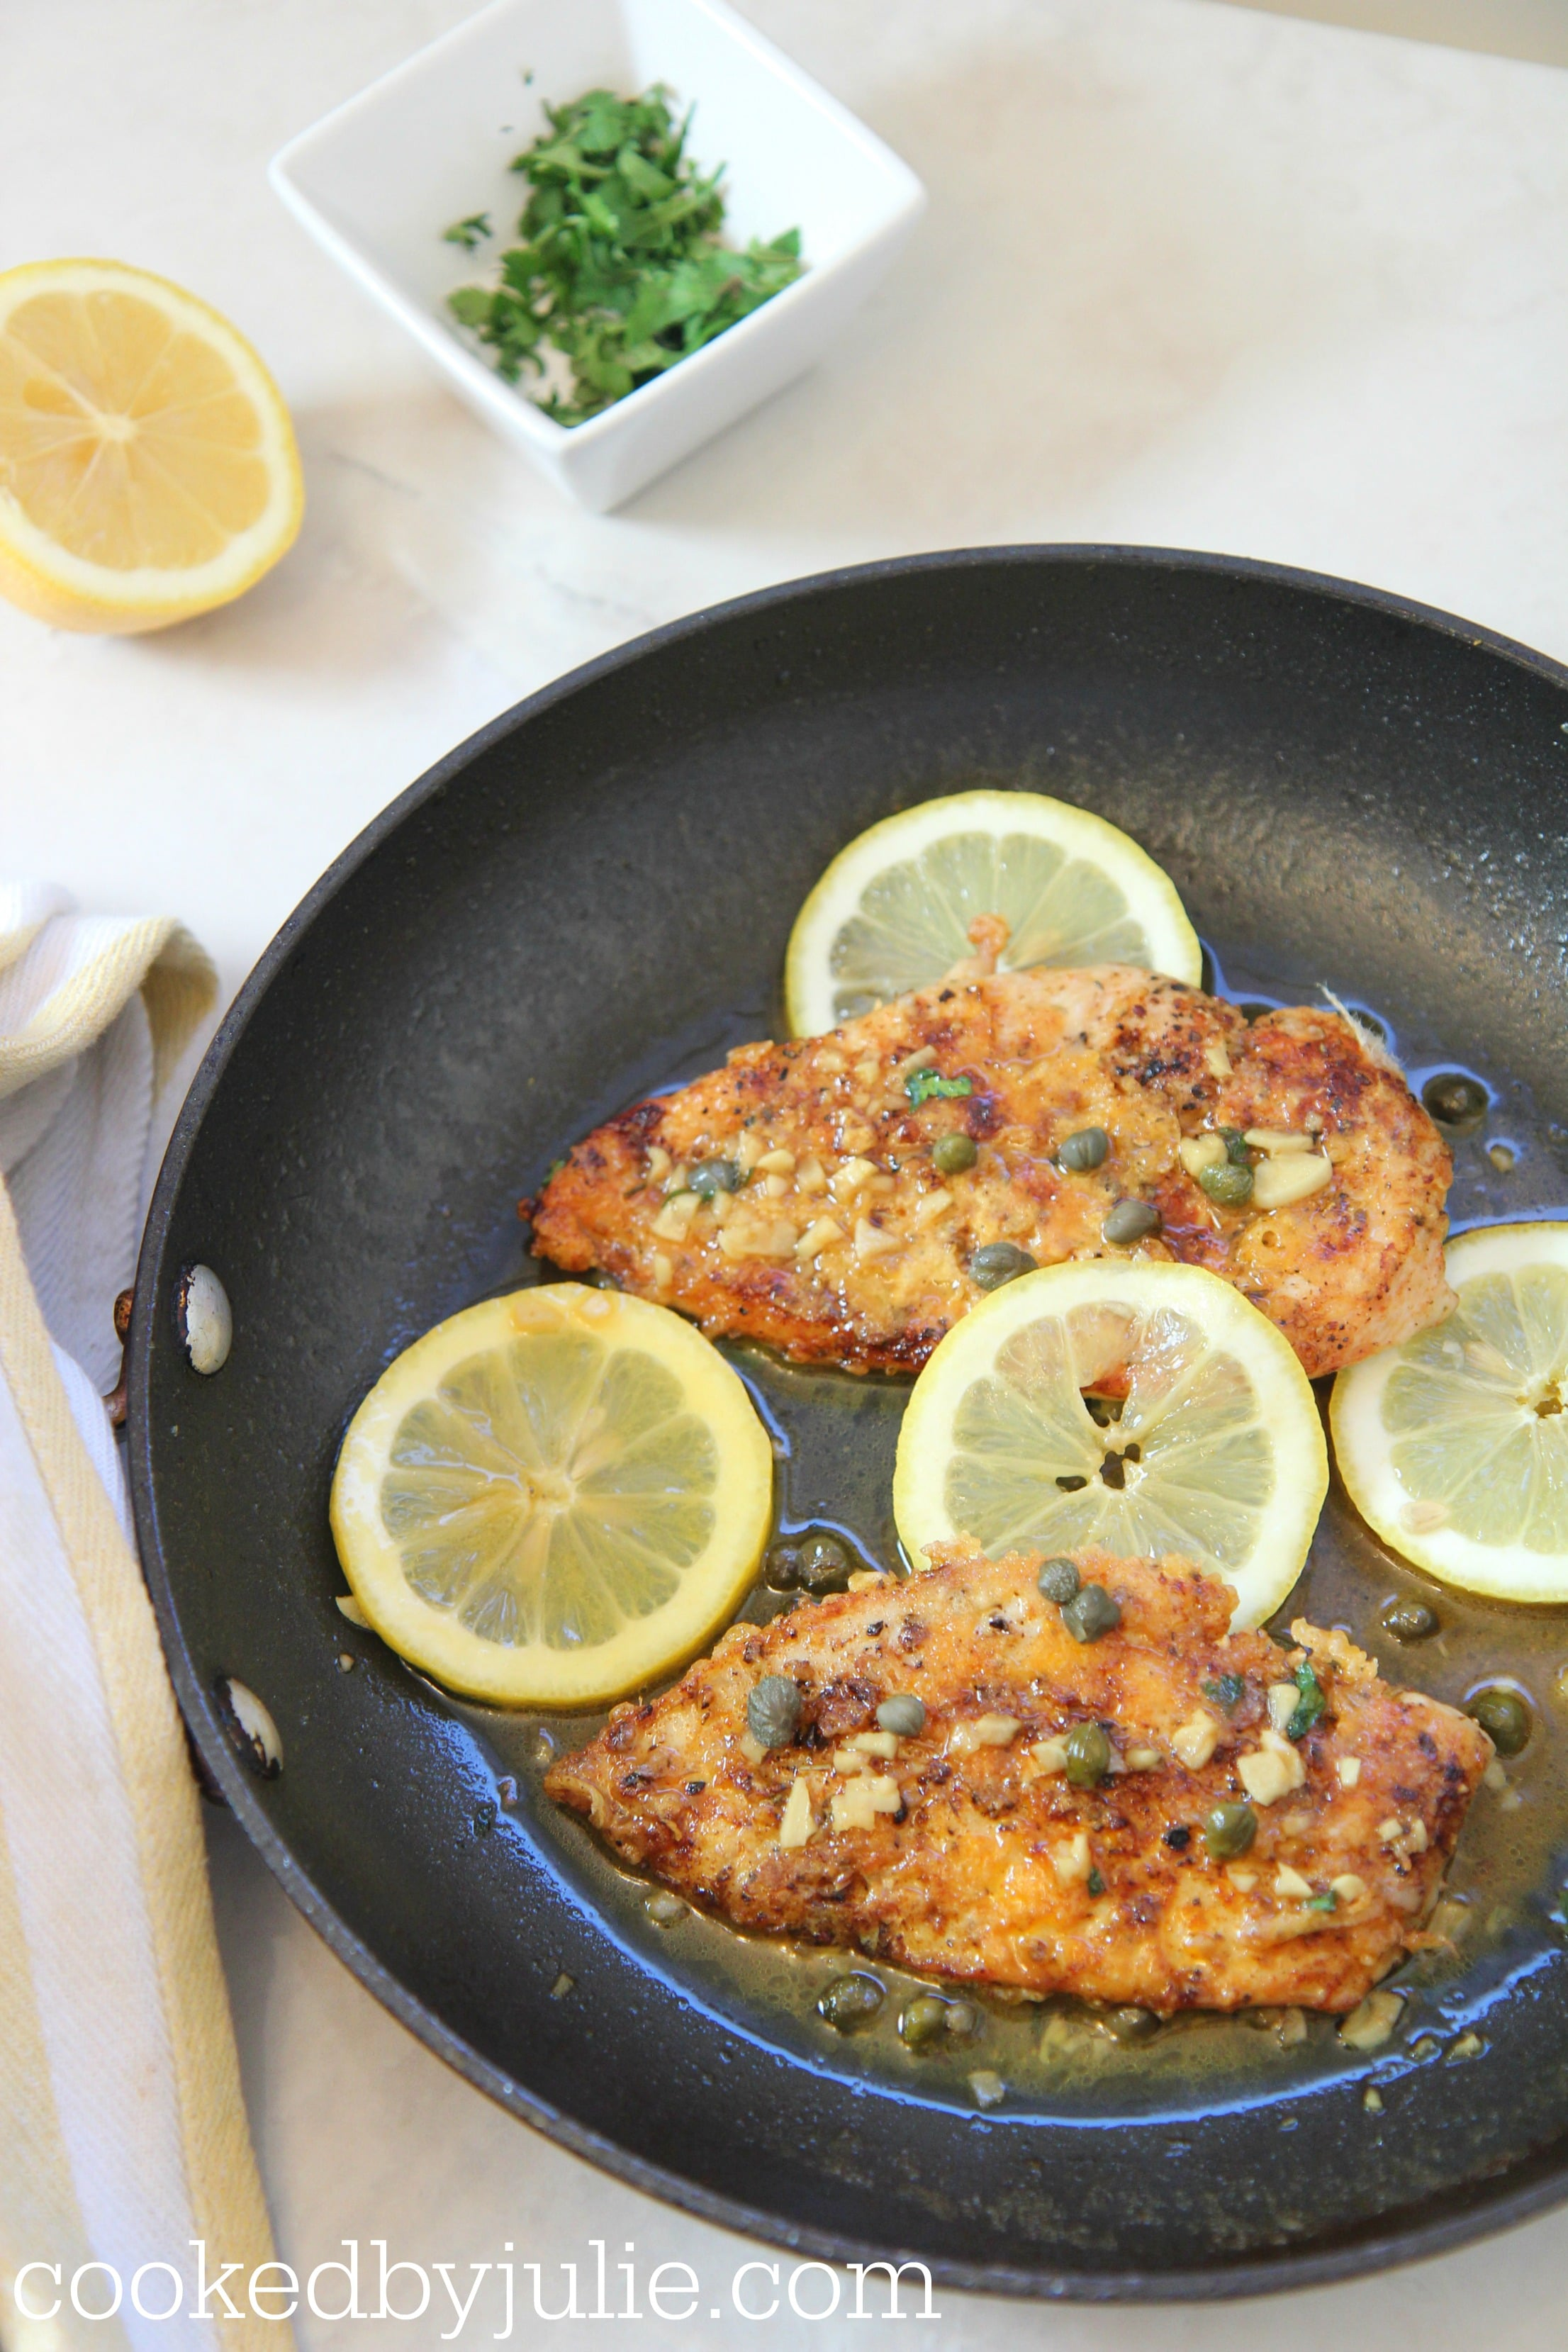 chicken piccata in a skillet with lemon and a small ramekin with parsley.